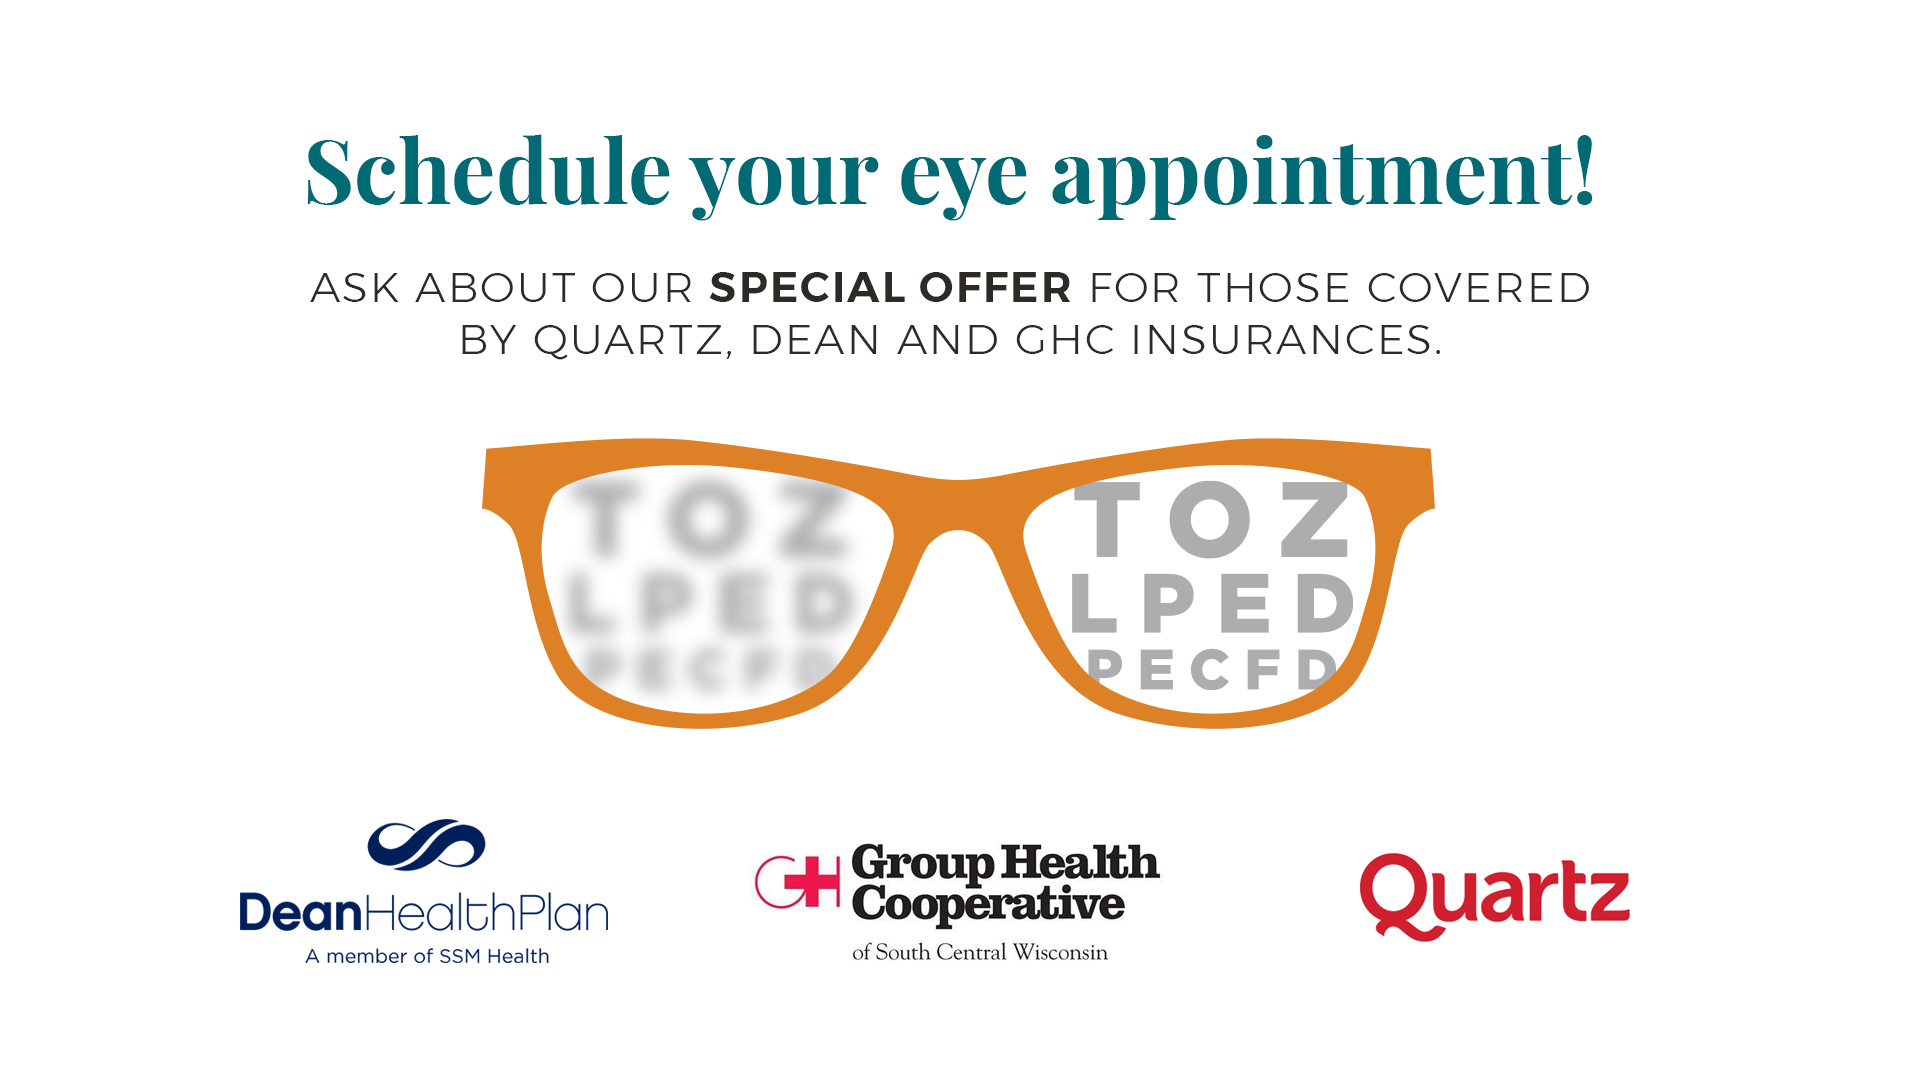 Eye appointment discounts